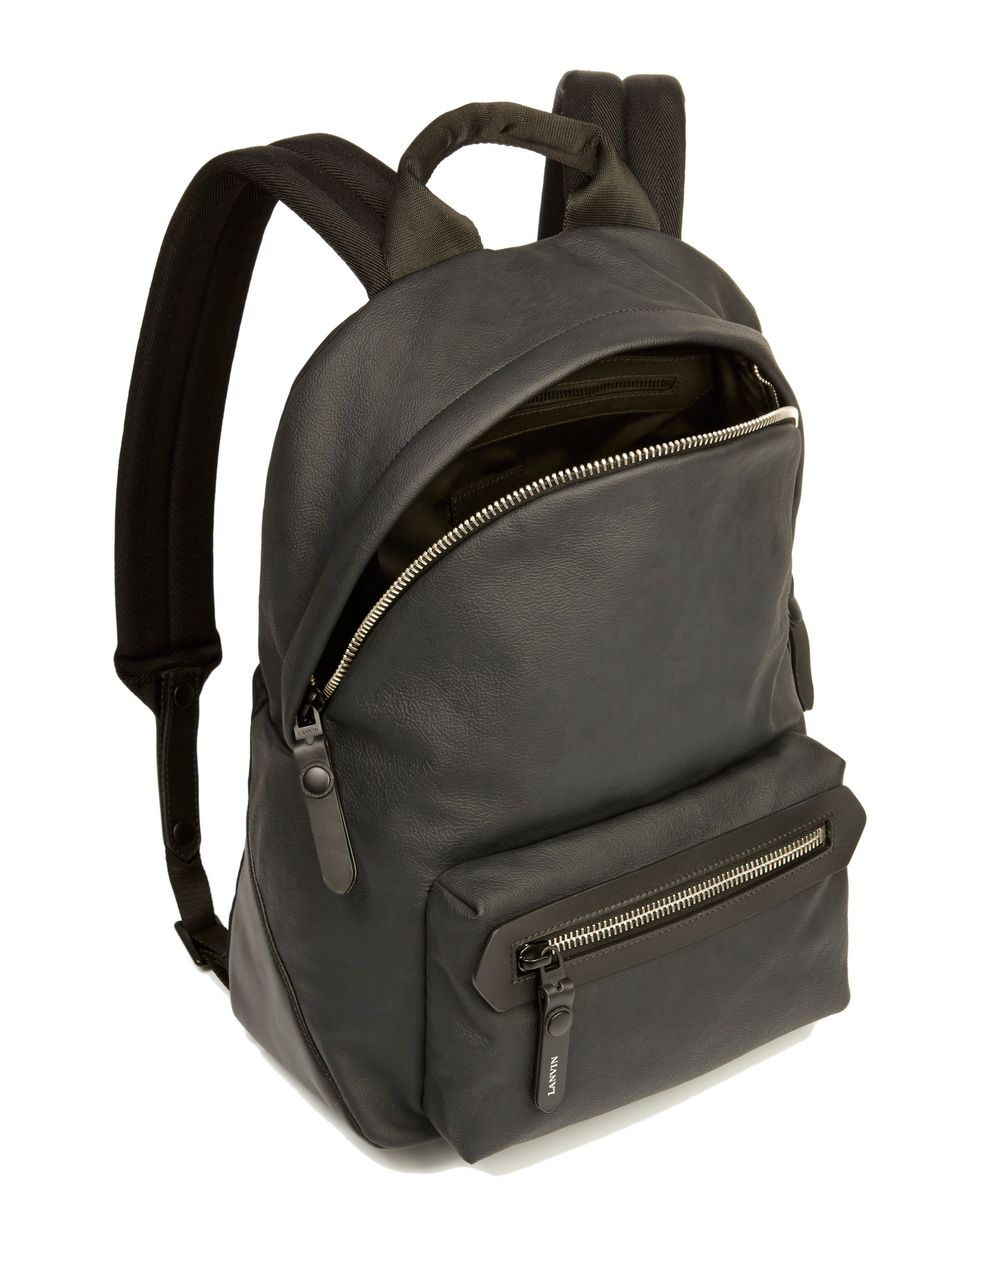 RUBBER CALFSKIN ZIPPED BACKPACK - Lanvin